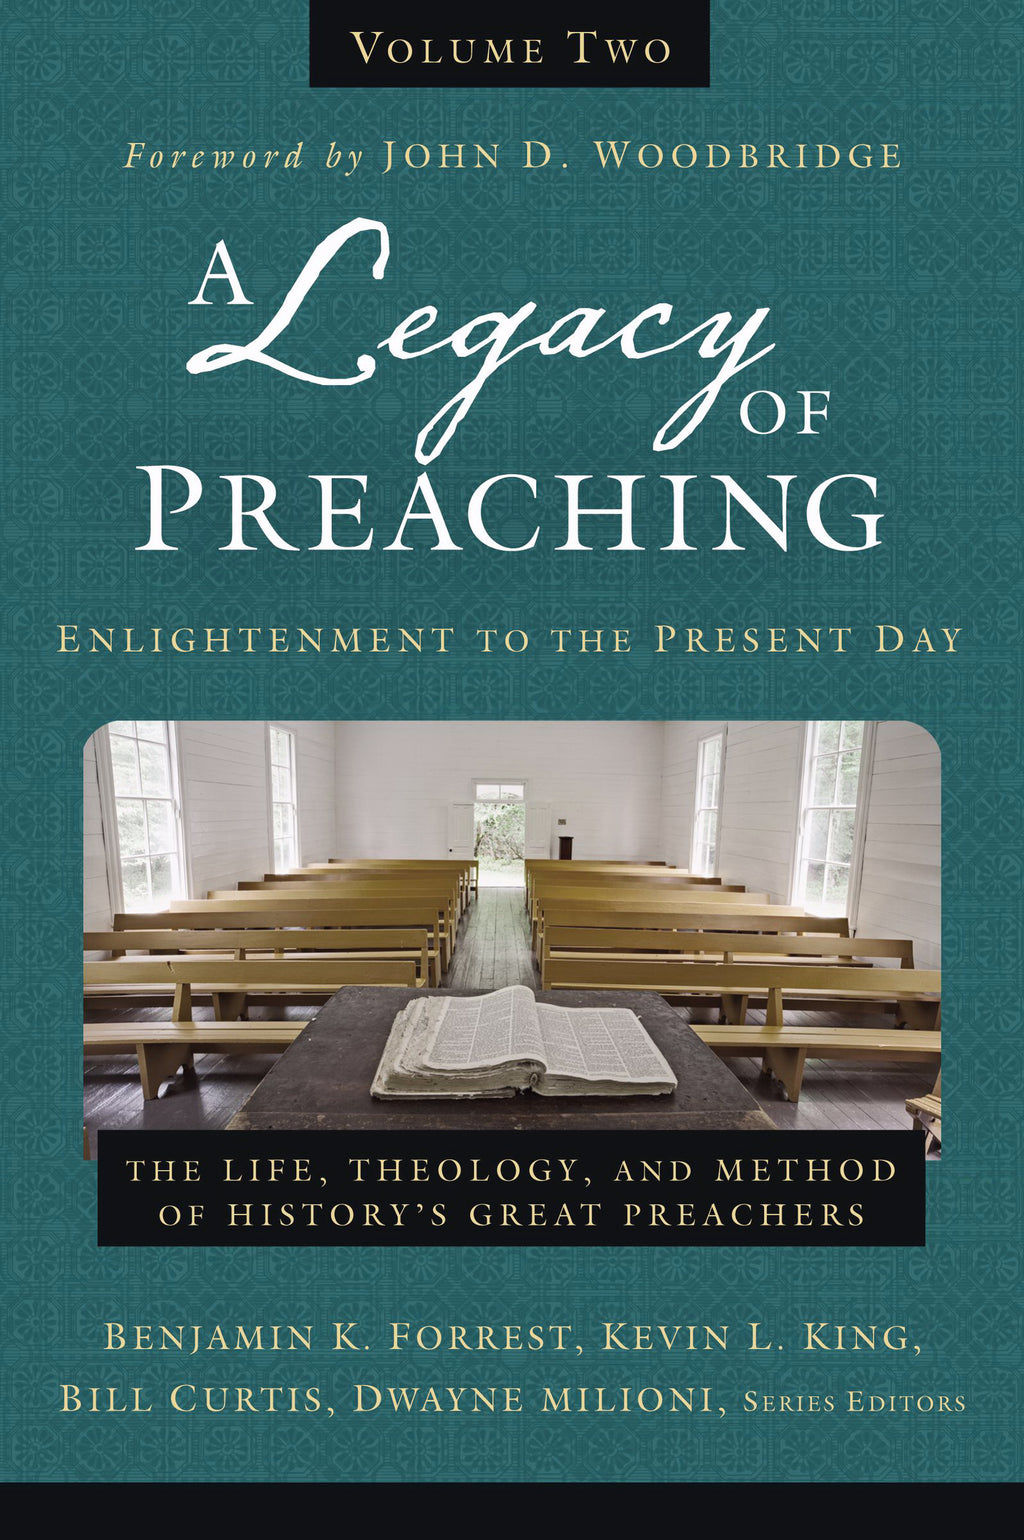 A Legacy Of Preaching: Enlightenment To The Present Day (Volume Two)